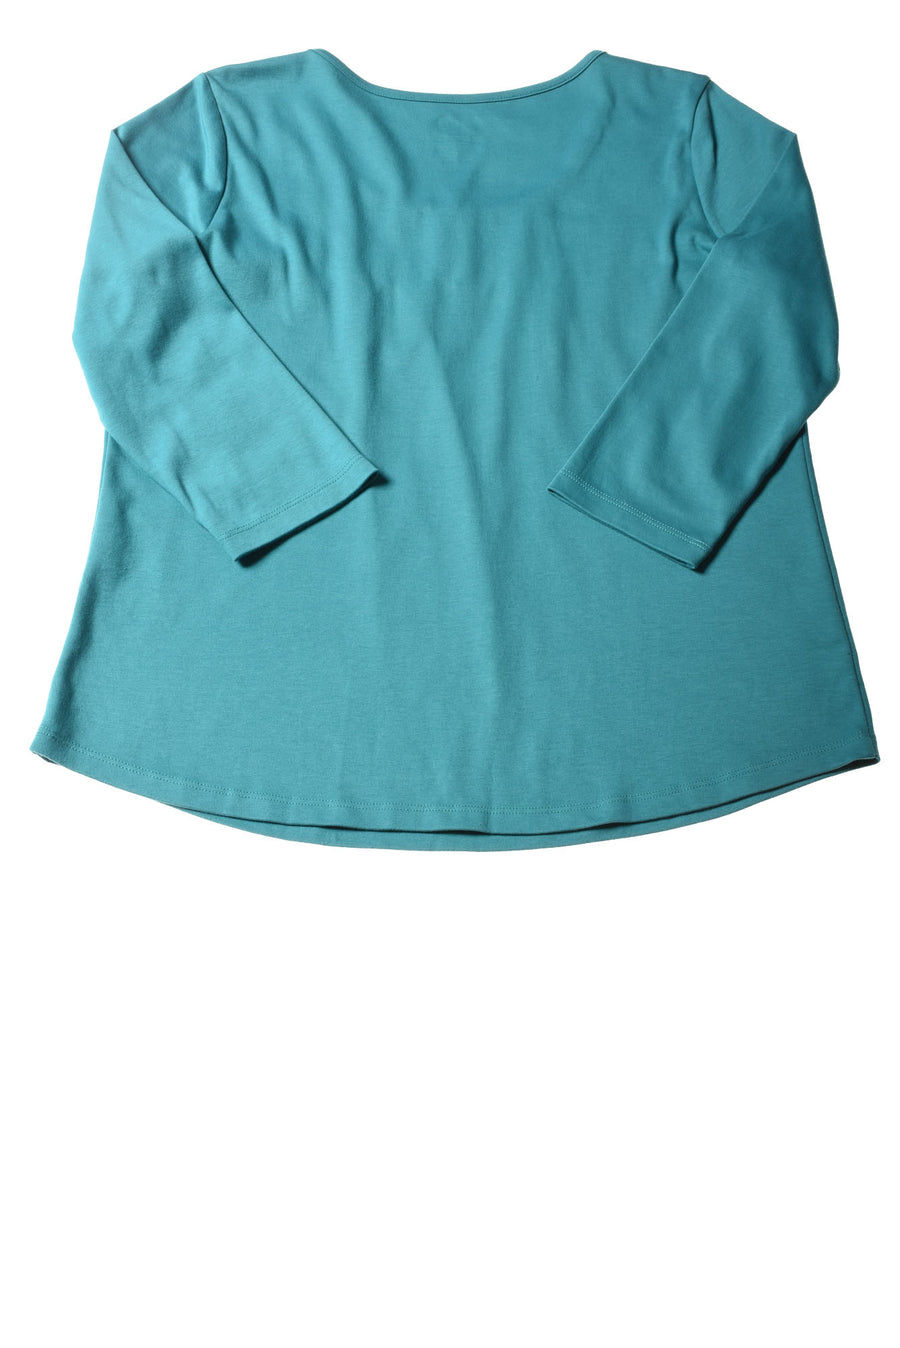 Women's Top By L.L. Bean